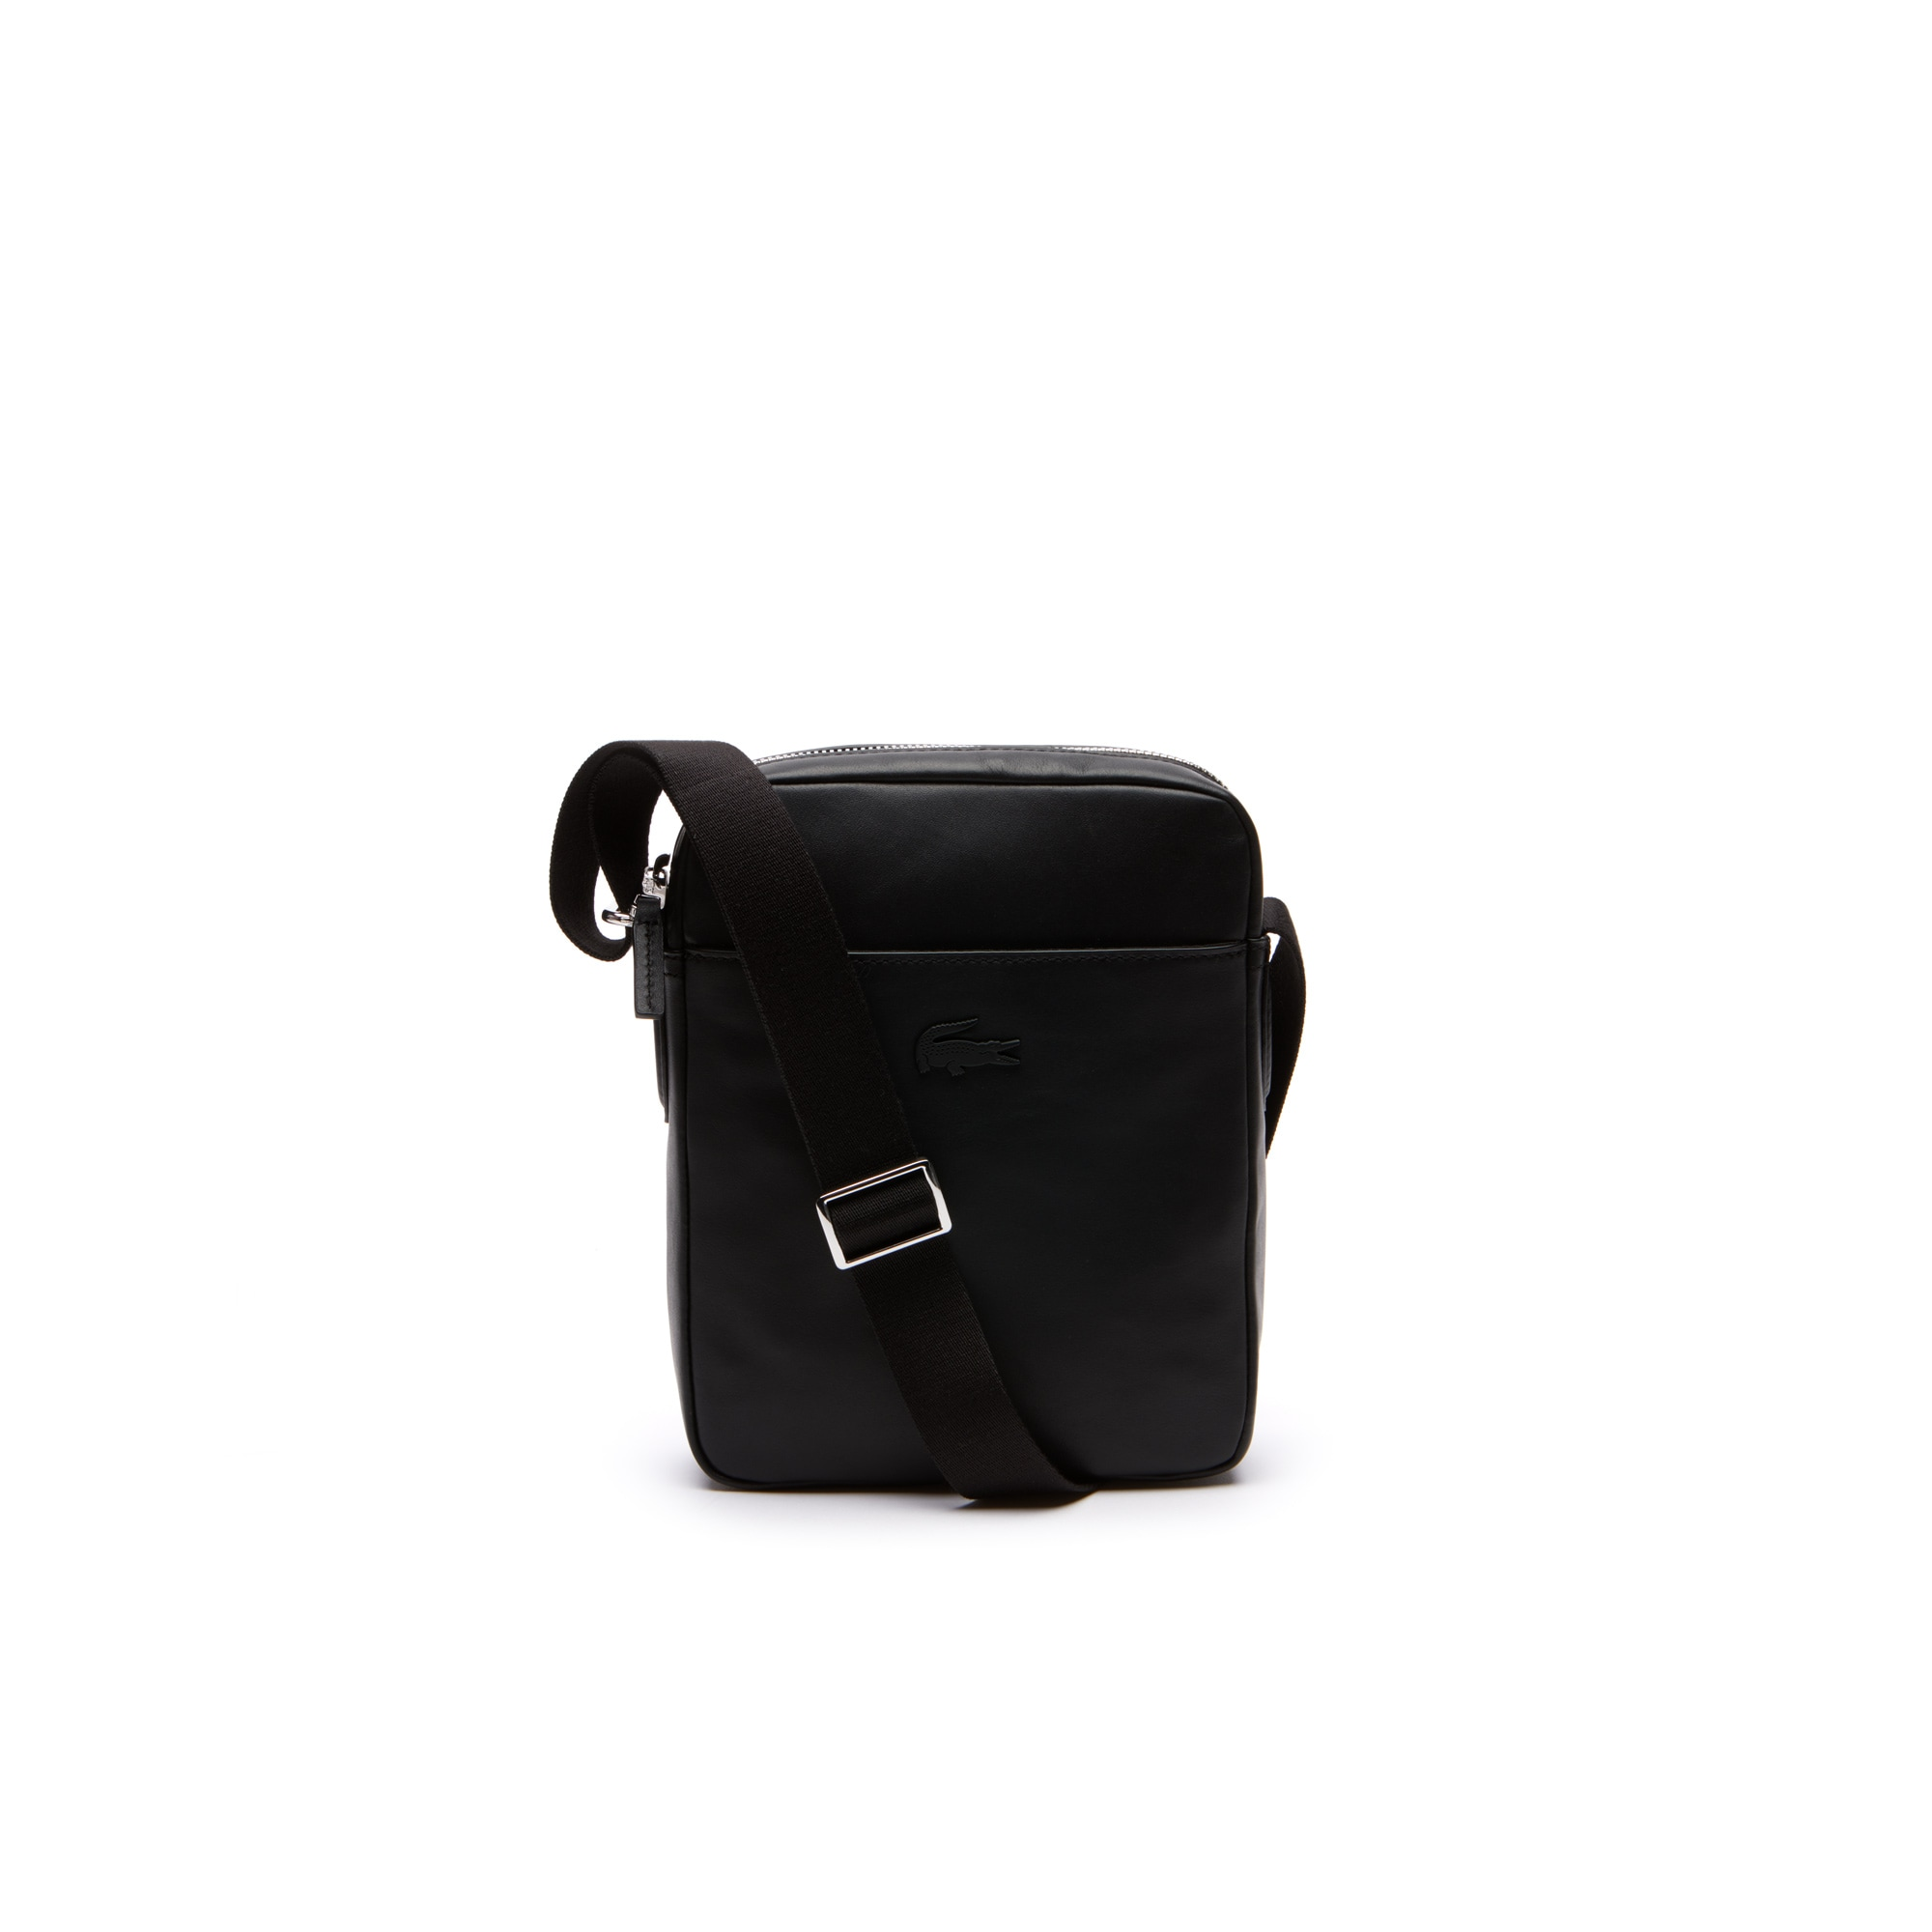 Men's L.12.12 Business Vertical Leather Bag